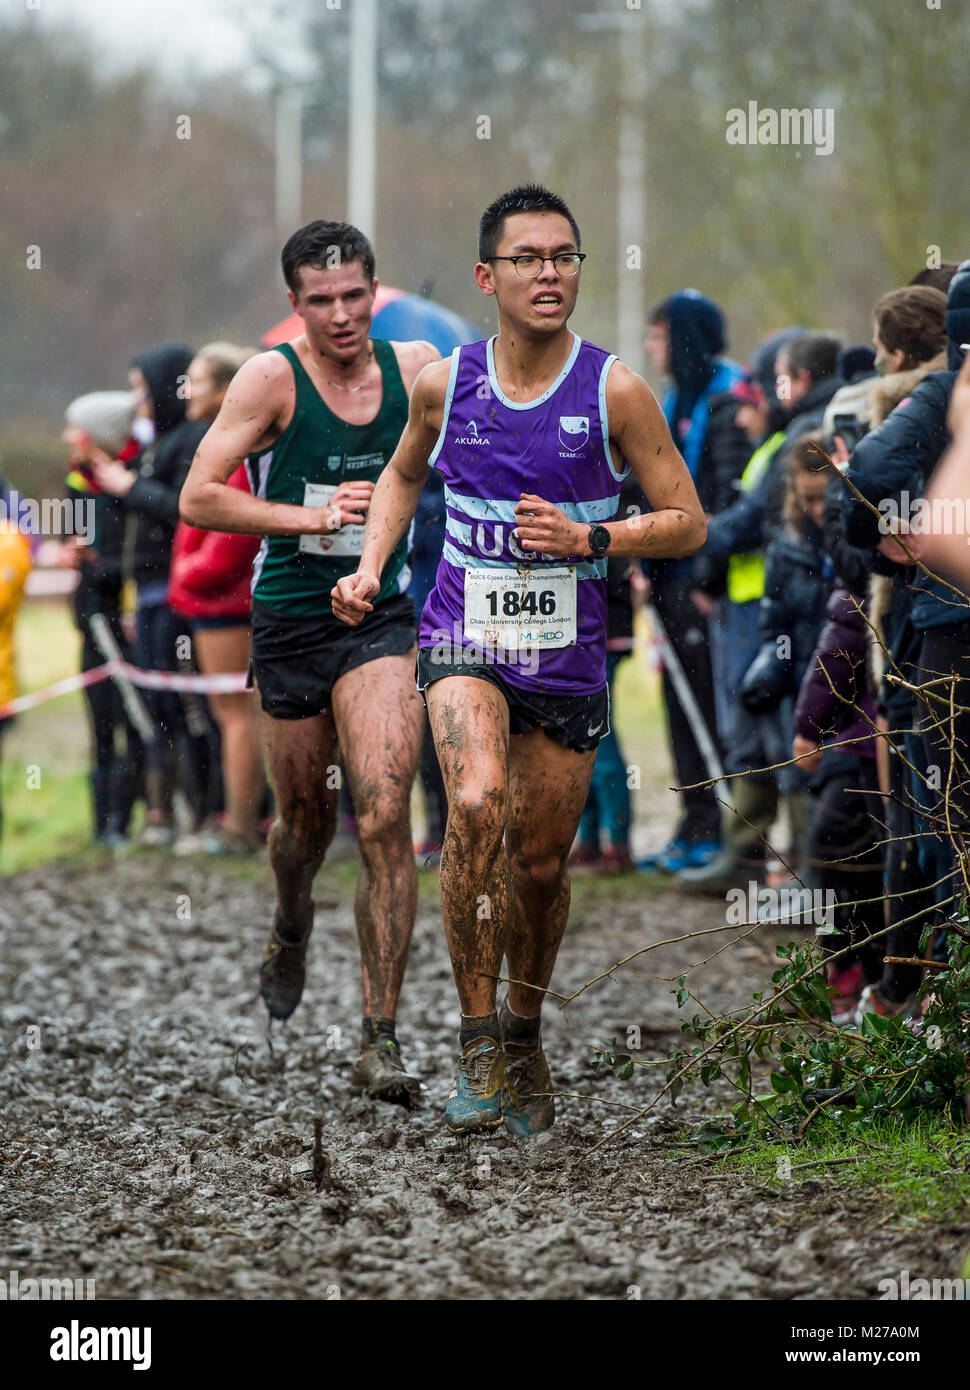 BUCS (British Universities & Colleges Sport) Cross Country Championships 2018 - Stock Image